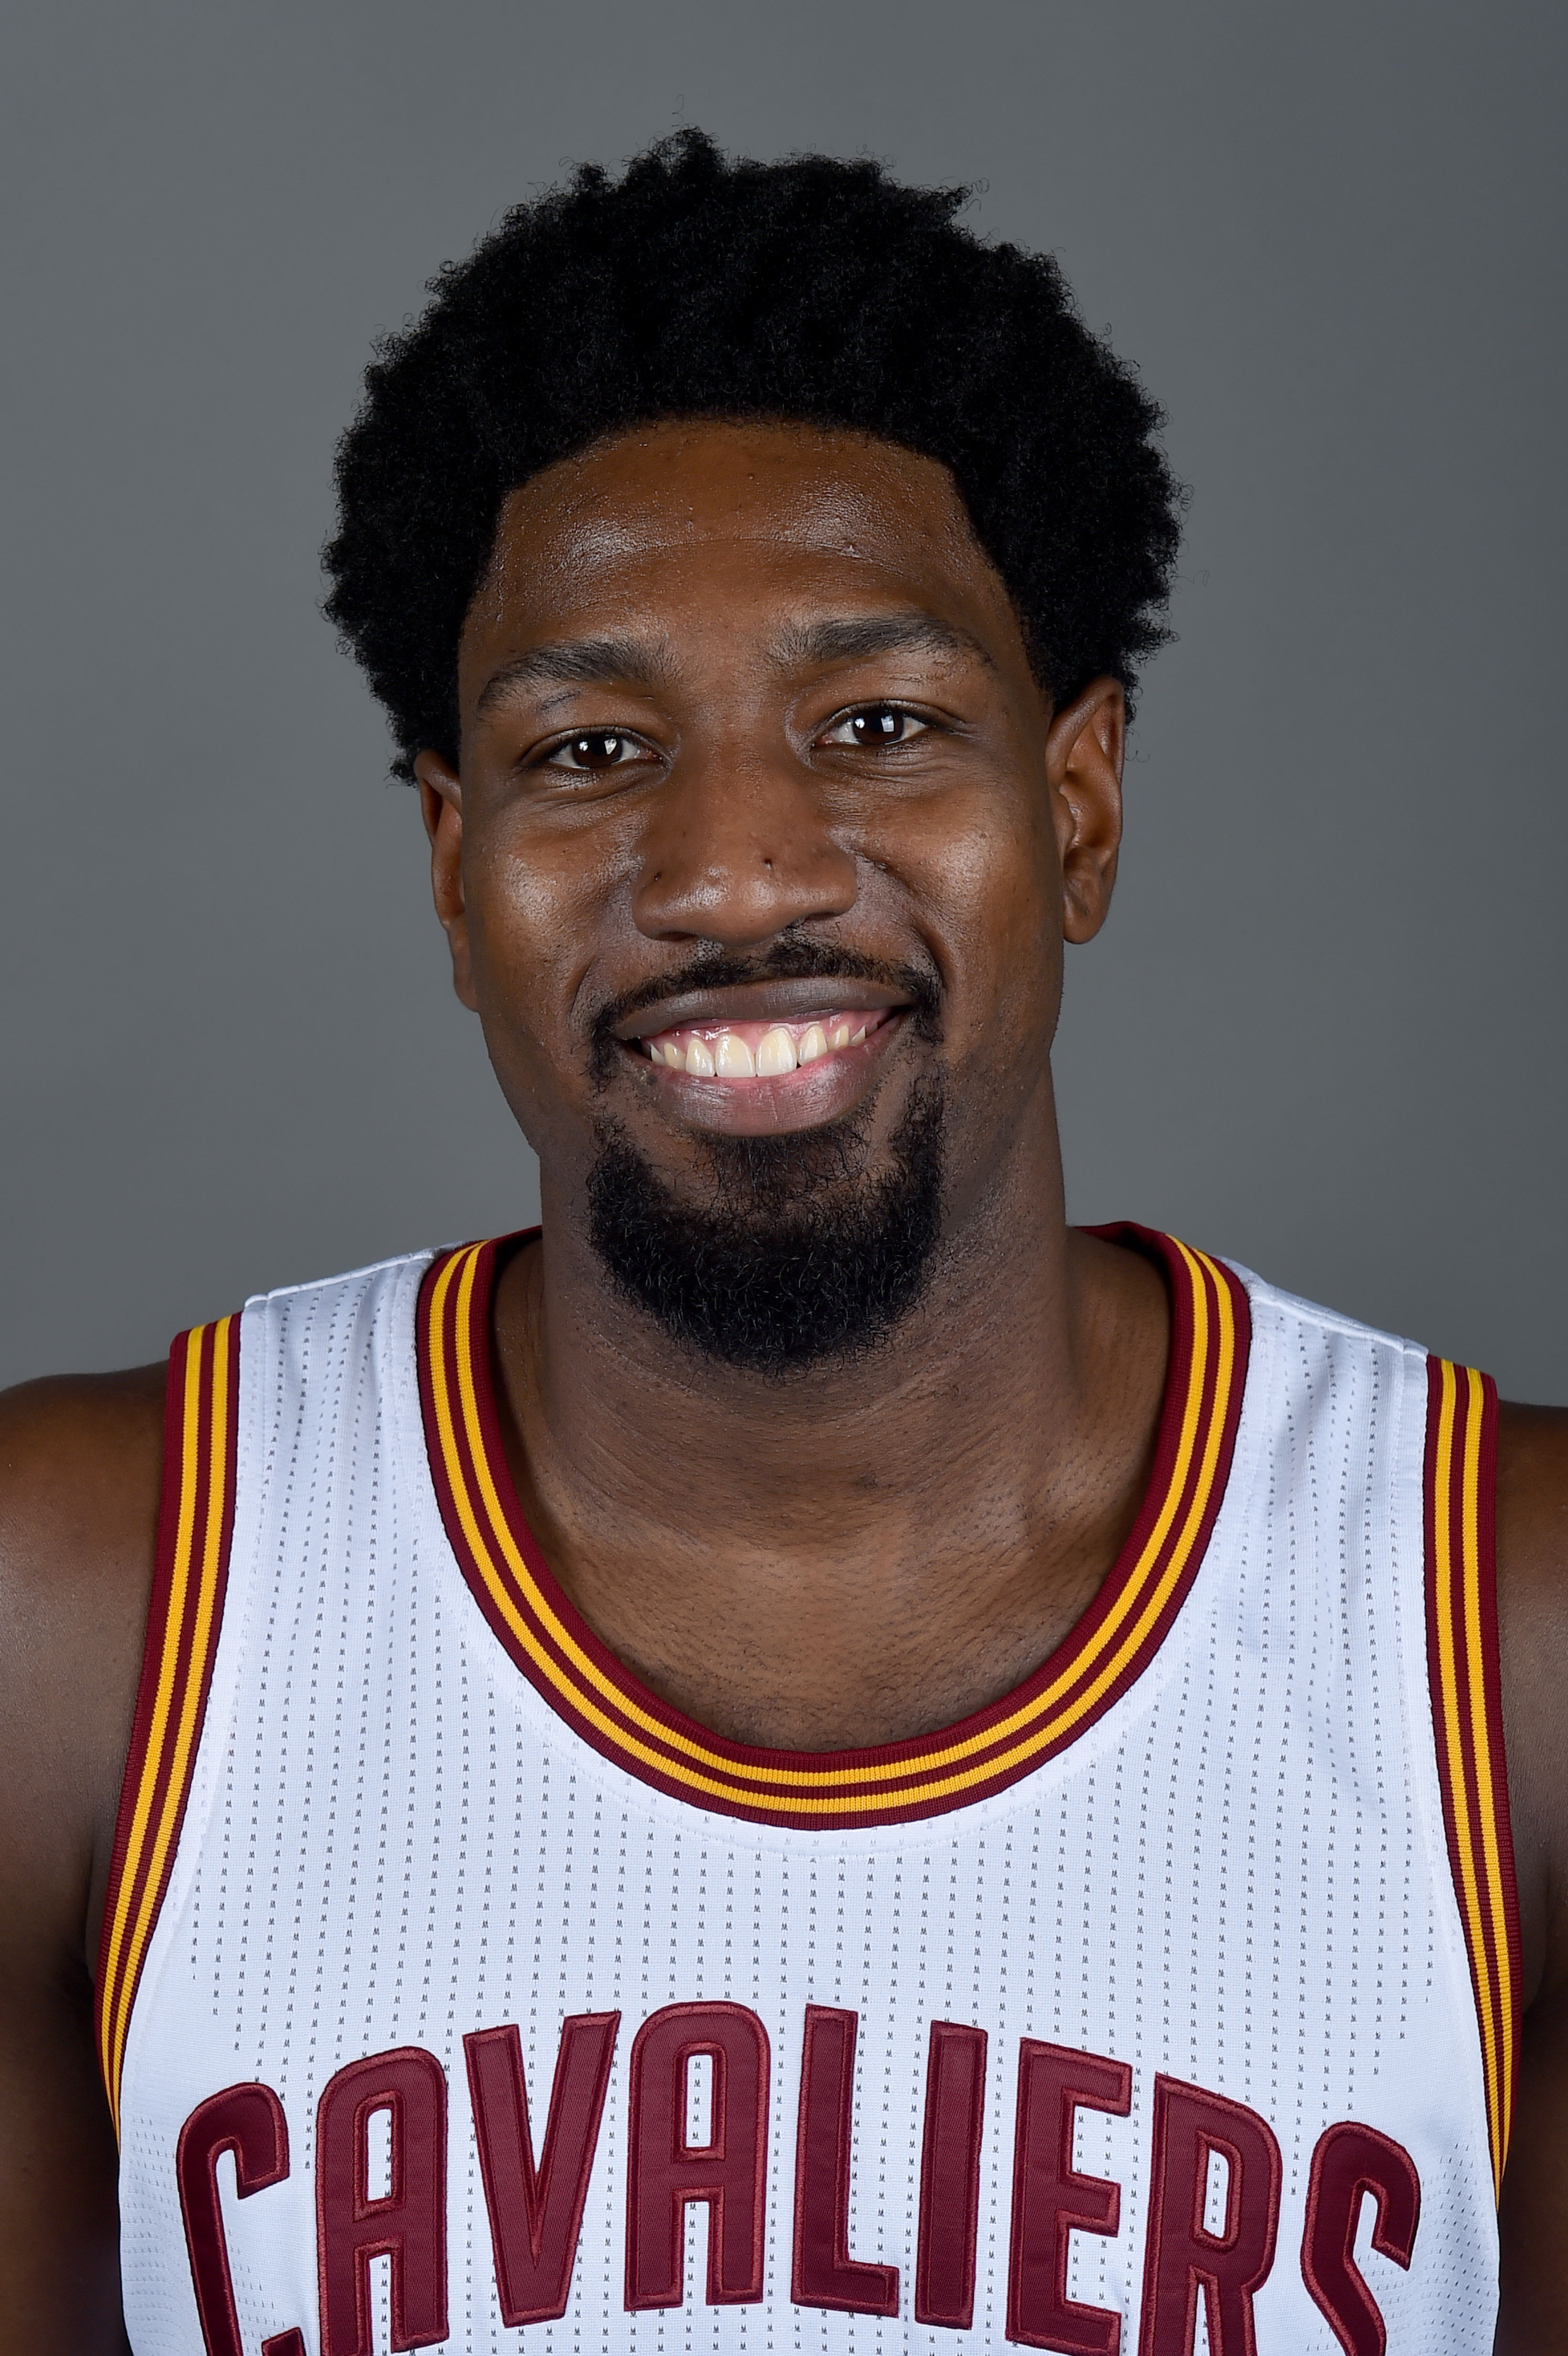 NBA: Cleveland Cavaliers-Media Day